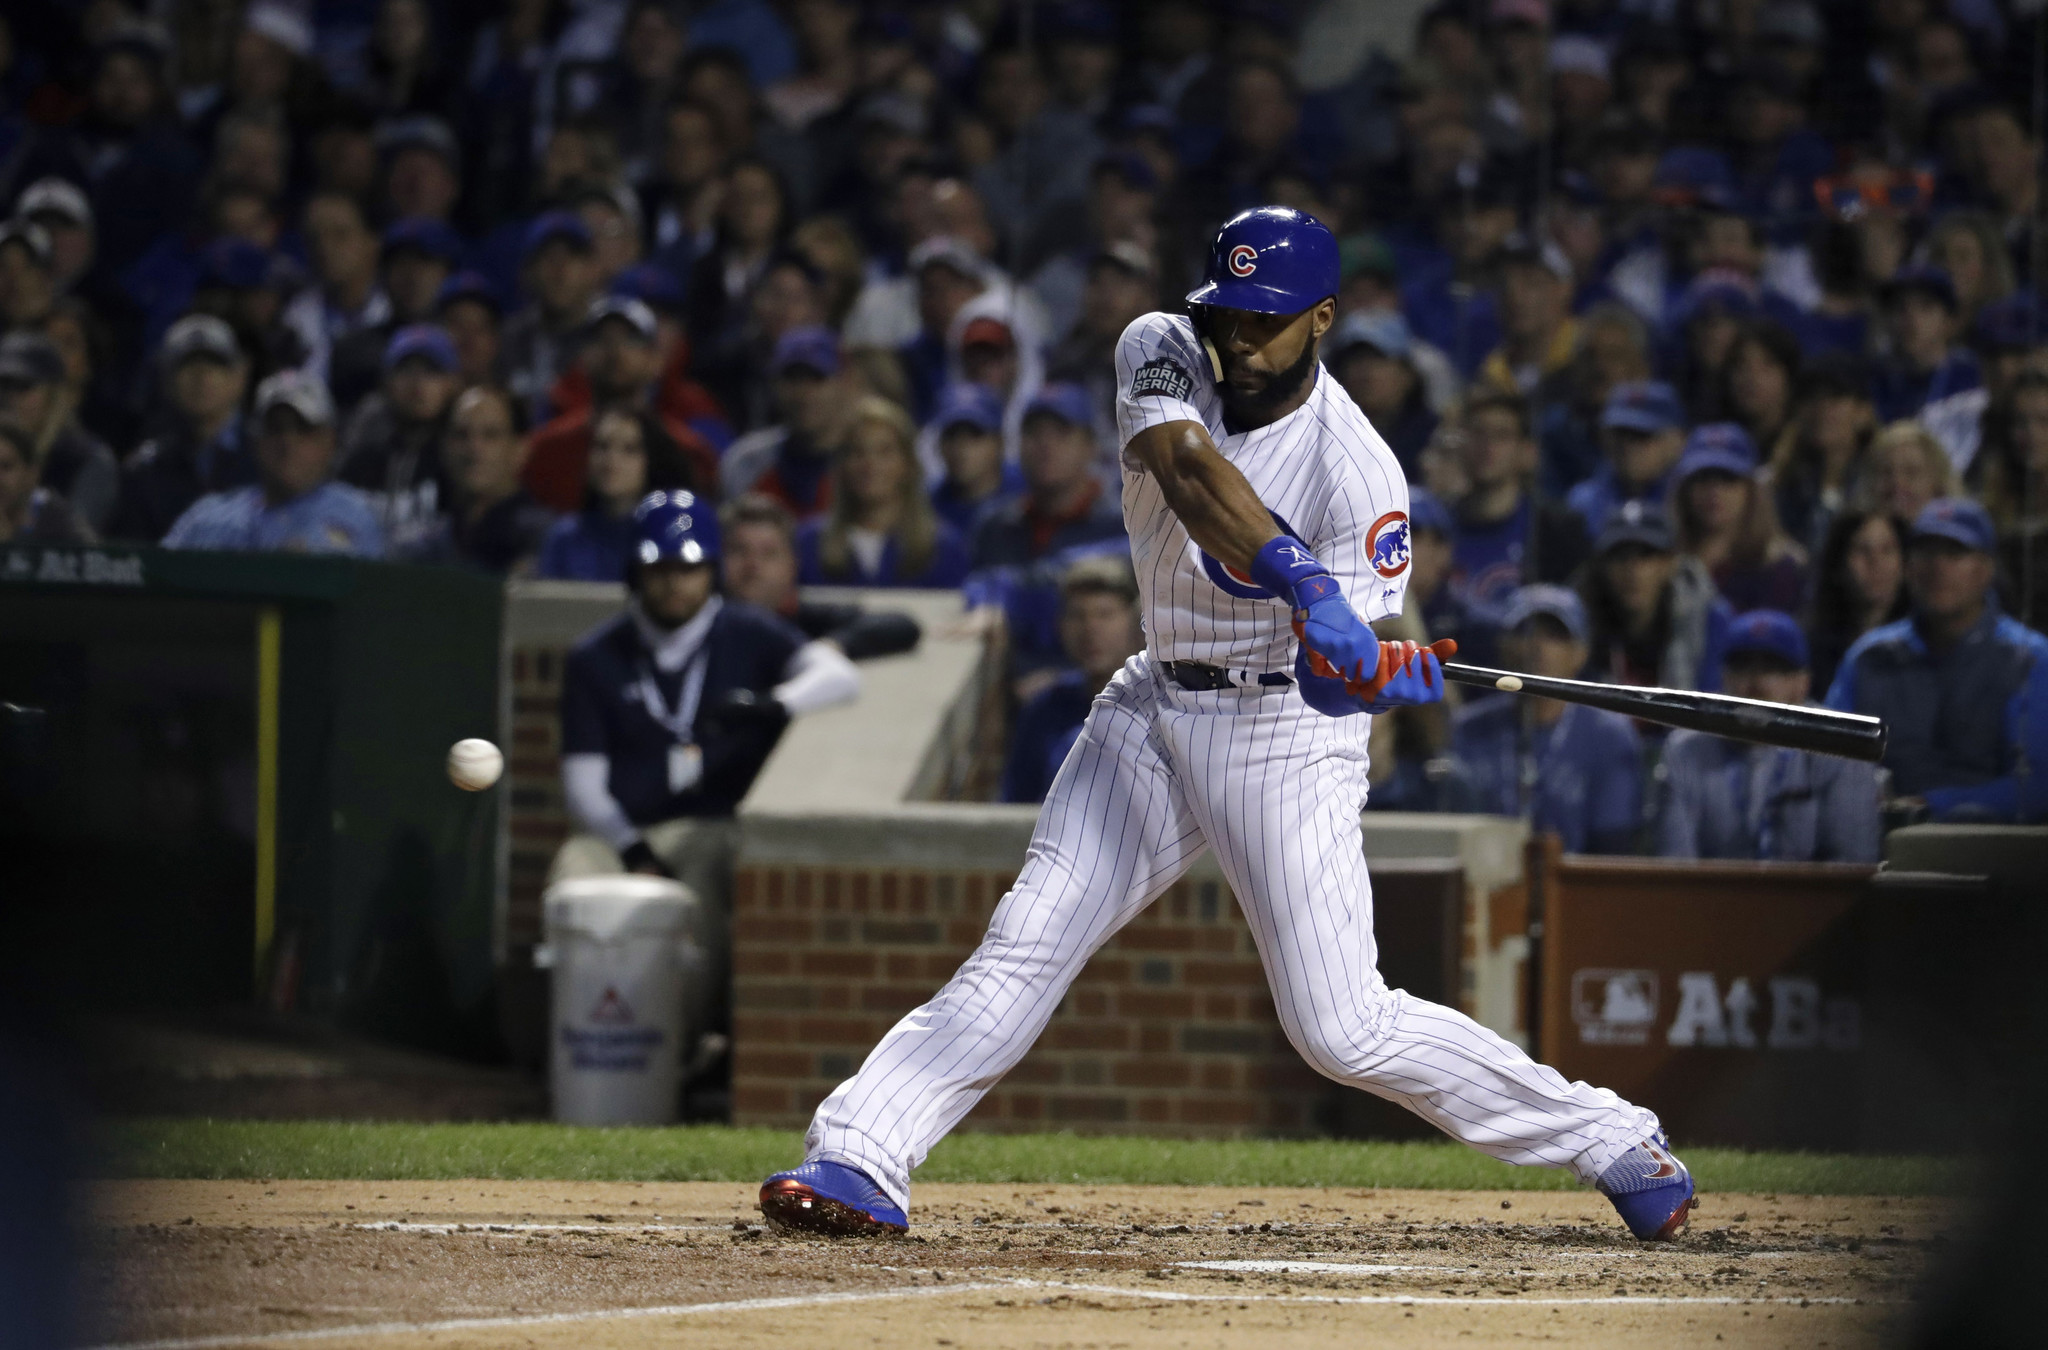 Cubs Give Jason Heyward A Second Chance To Make Impression